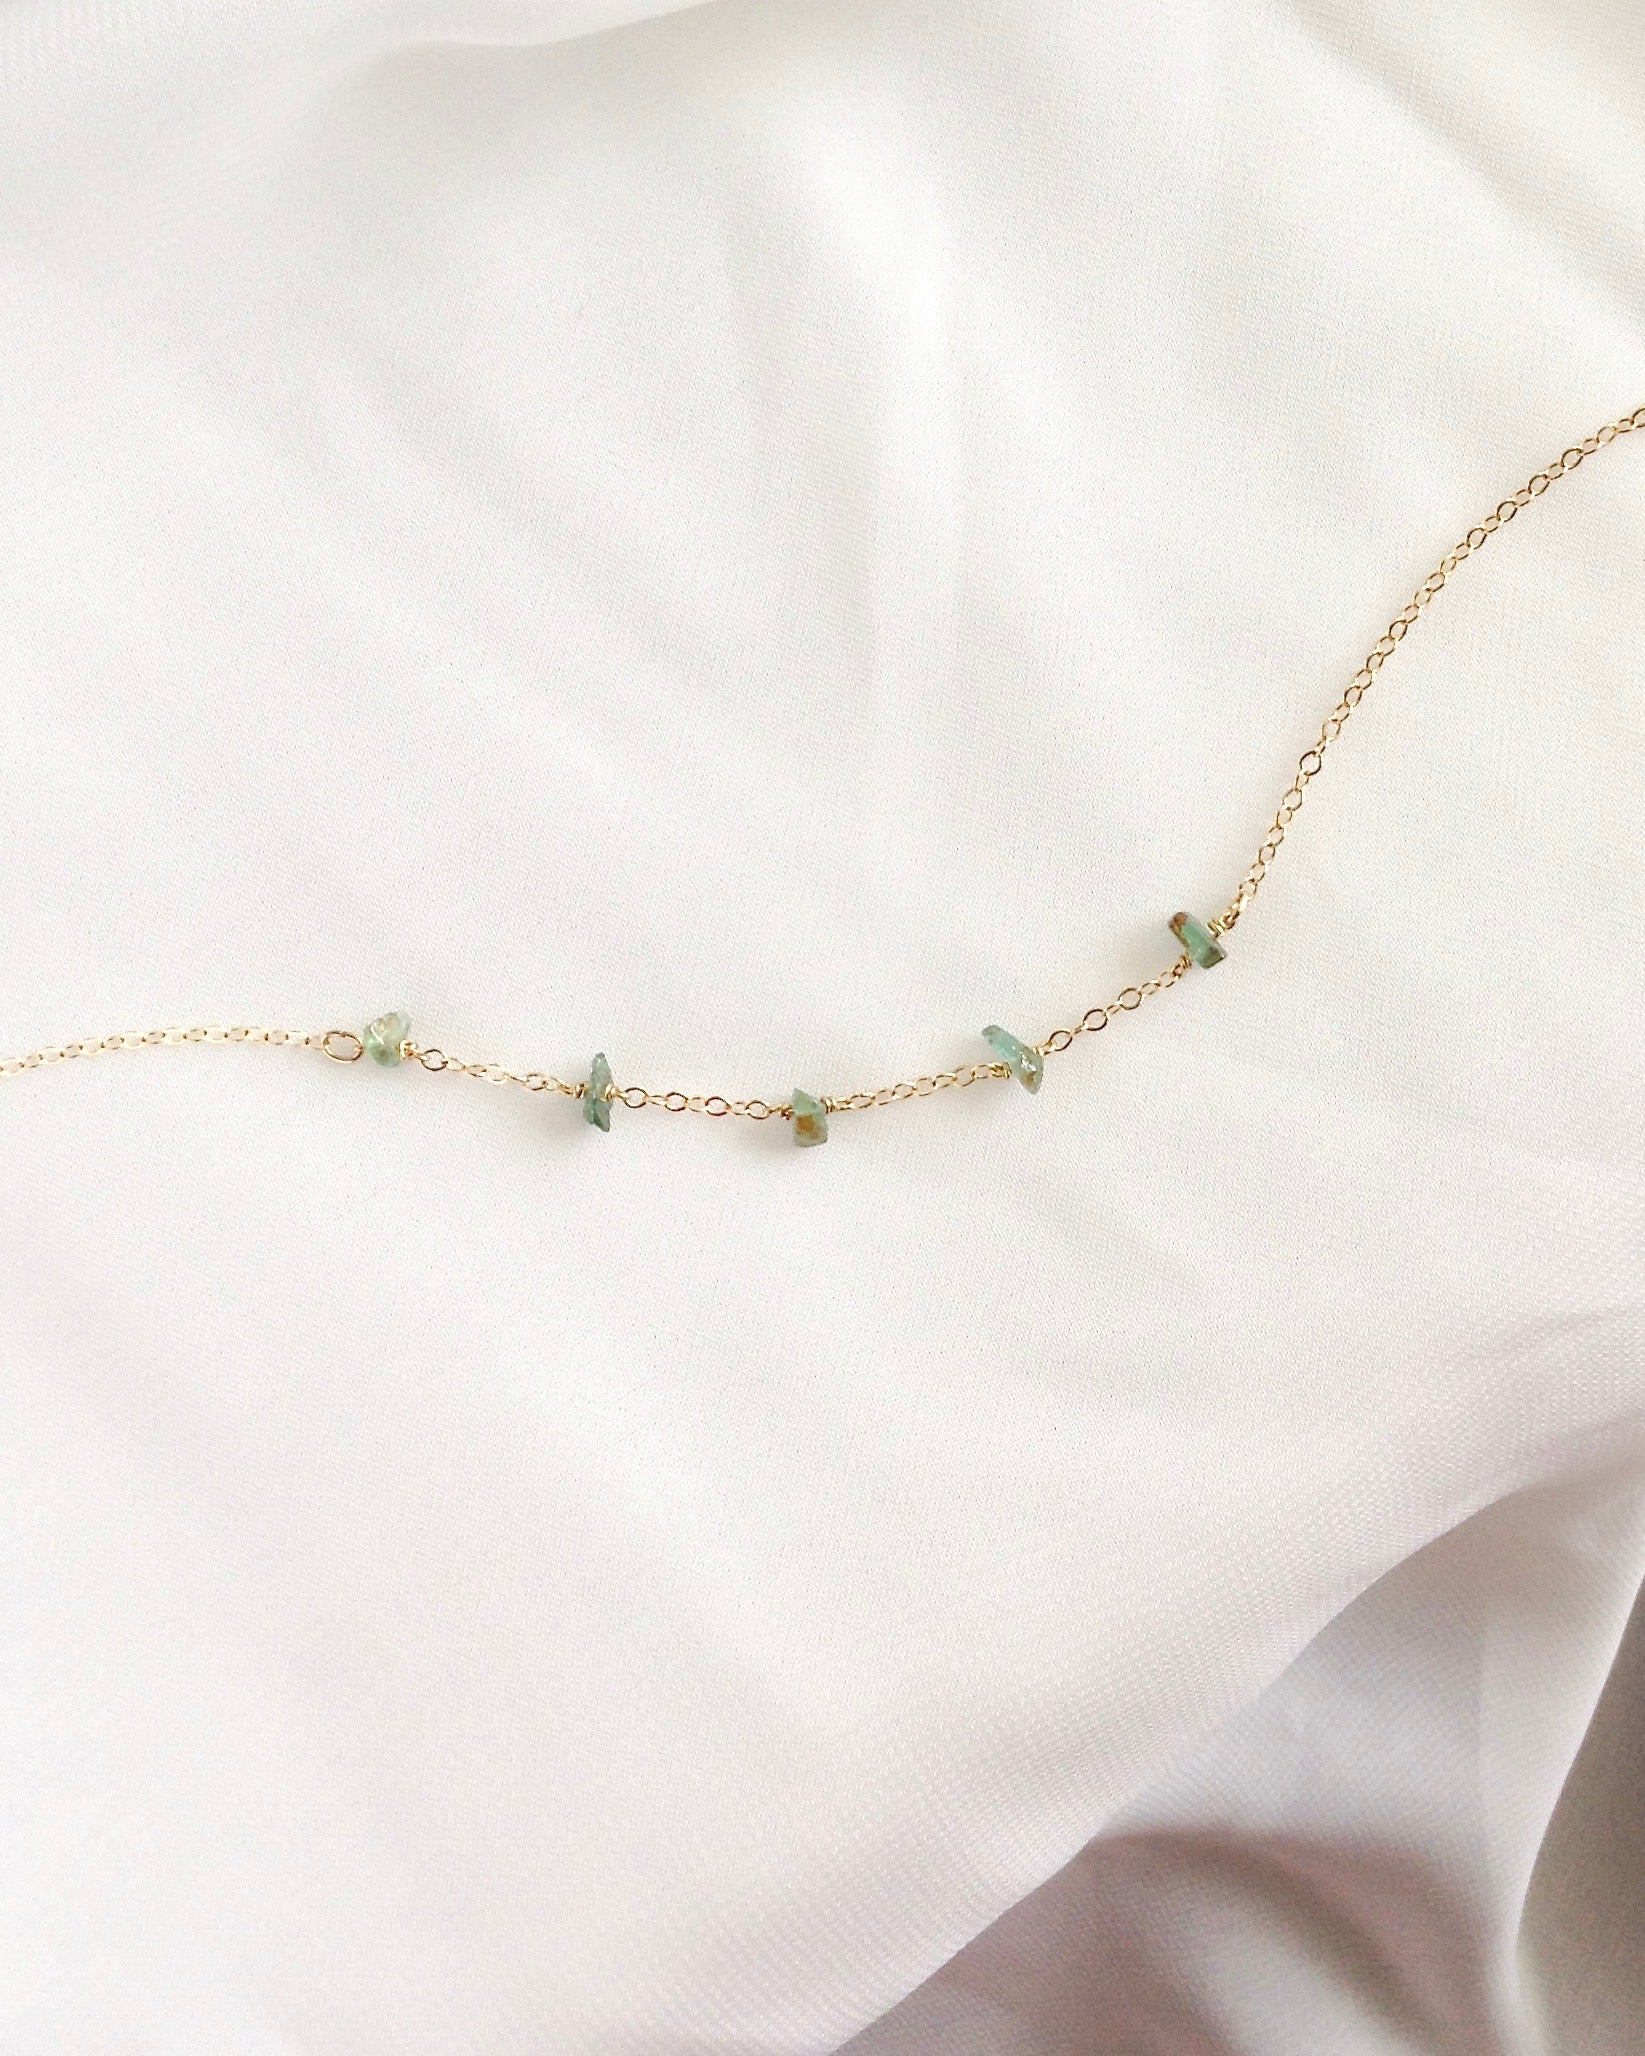 Emerald Raw Stone Bracelet In Gold Filled or Sterling Silver | IB Jewelry